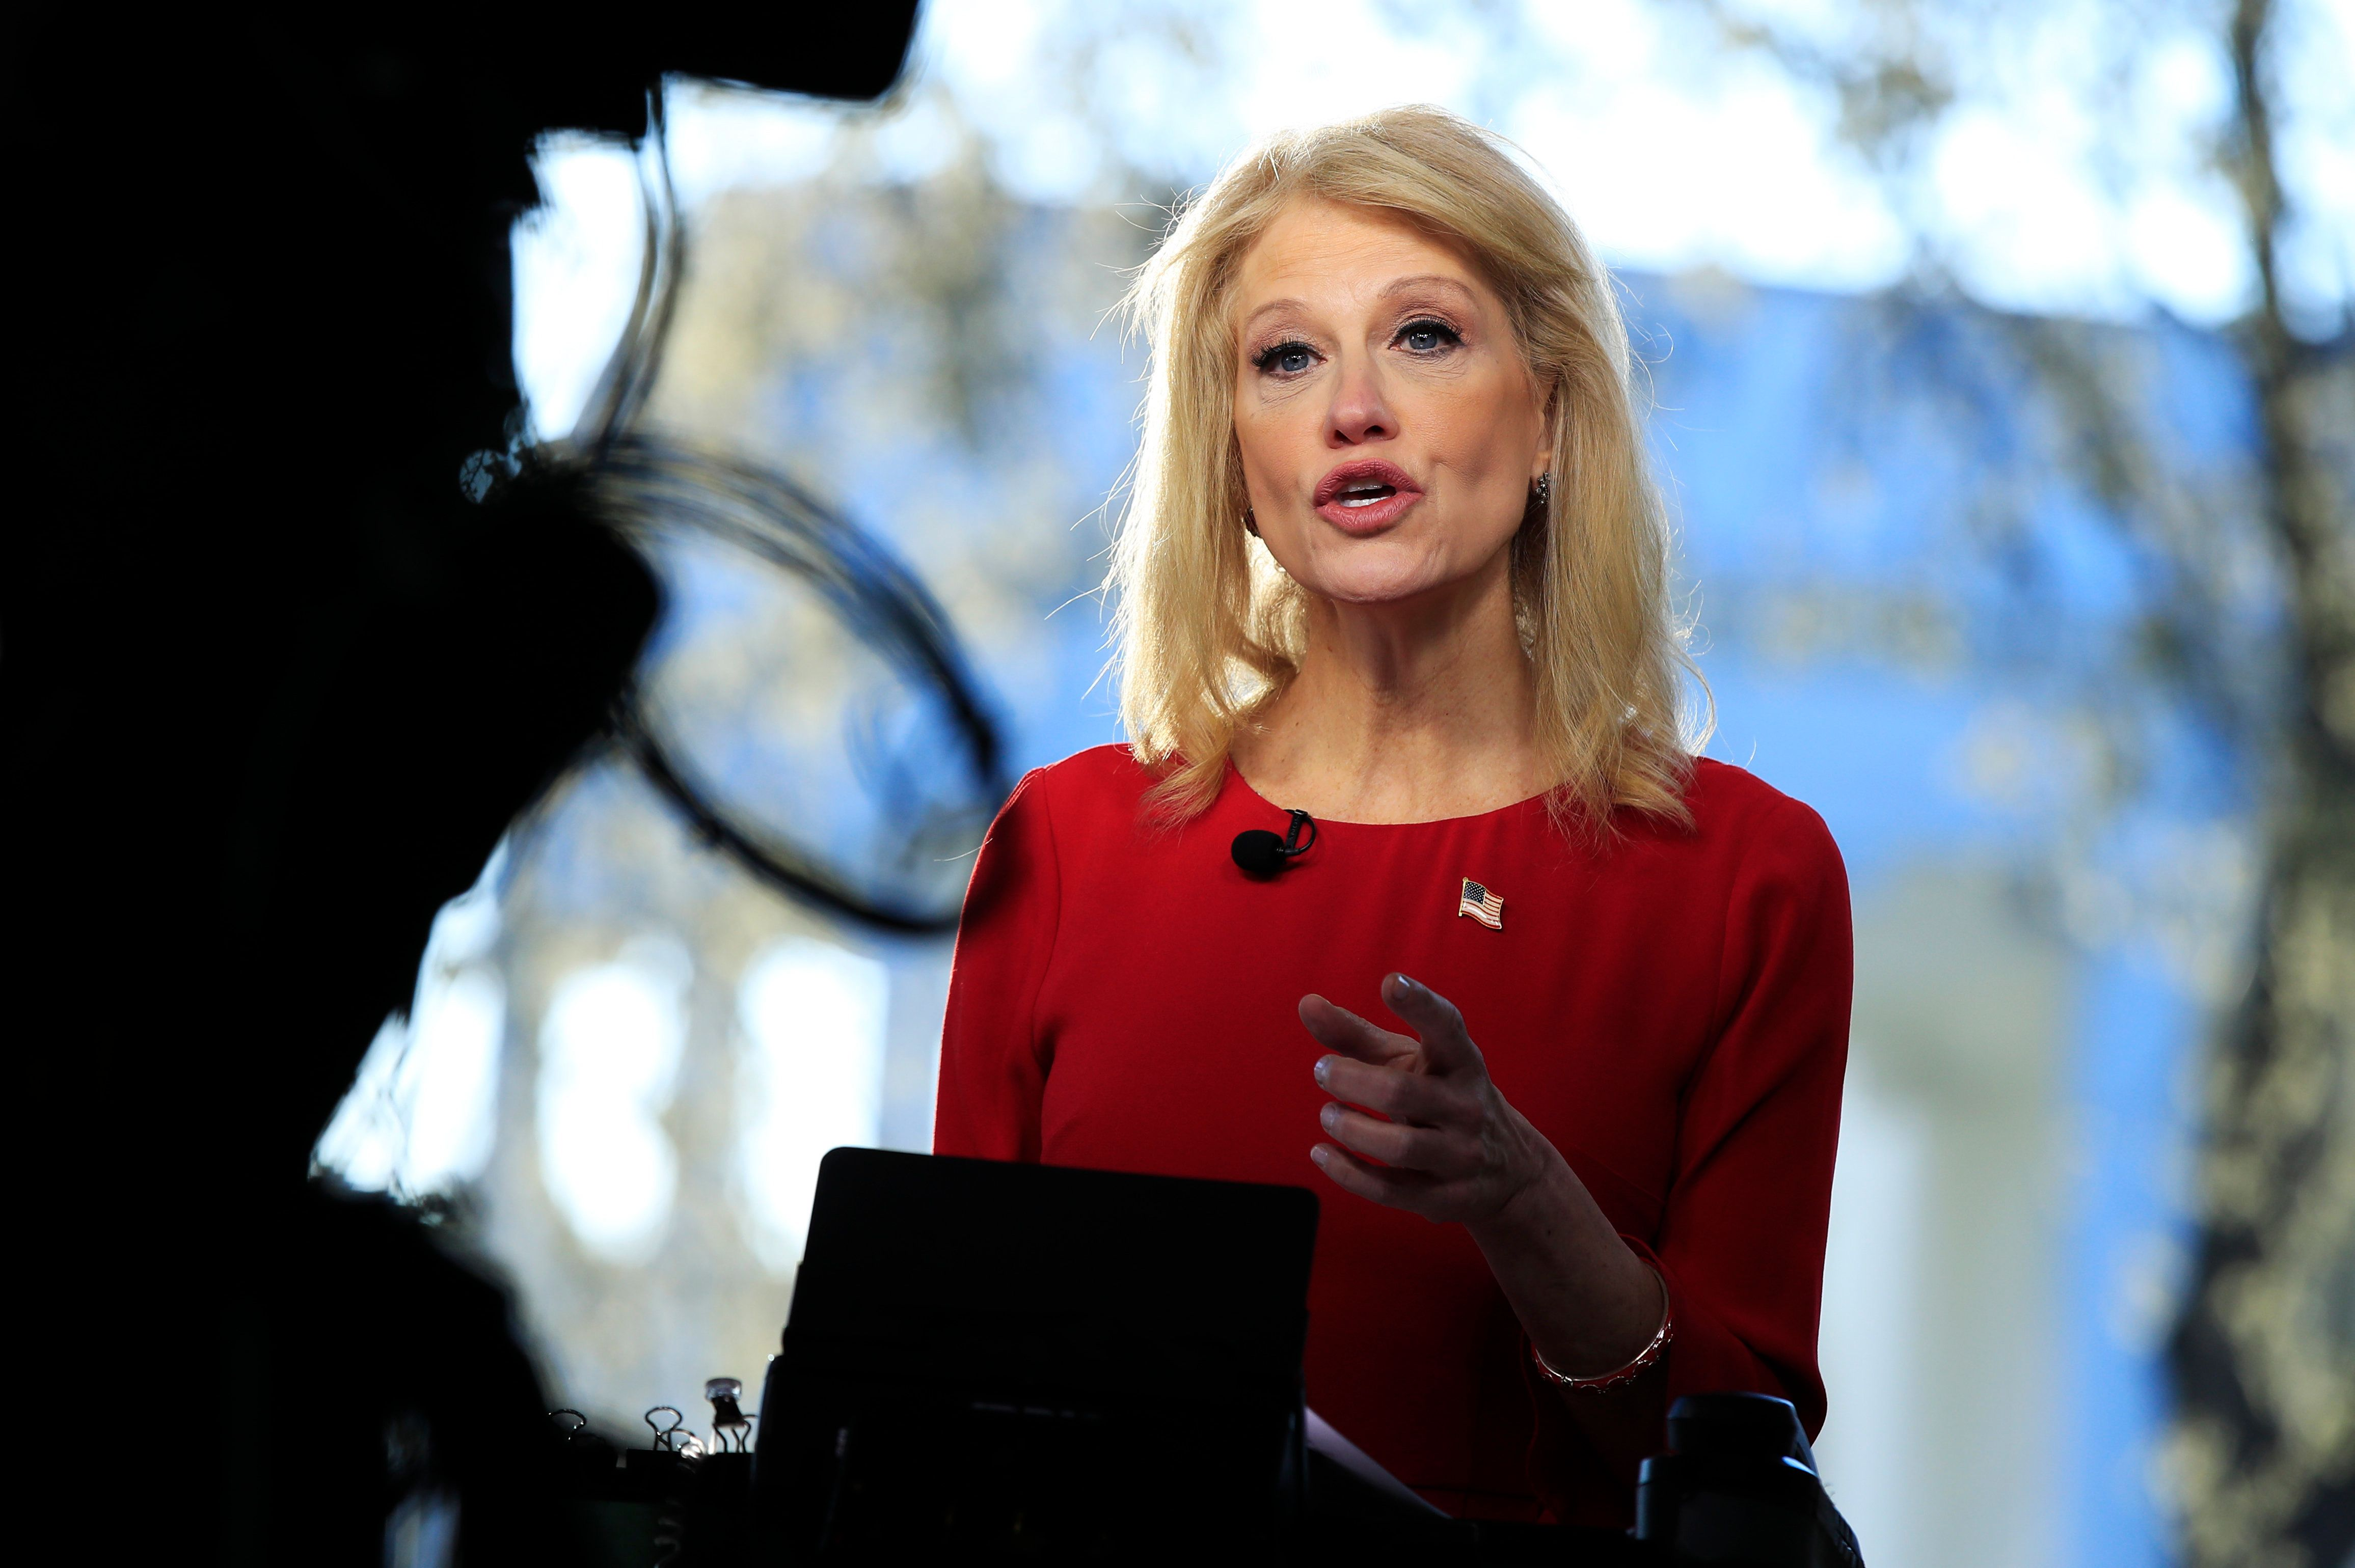 Counselor to the President Kellyanne Conway is interviewed on television outside the West Wing of the White House in Washington, Monday, March 25, 2019. (AP Photo/Manuel Balce Ceneta)